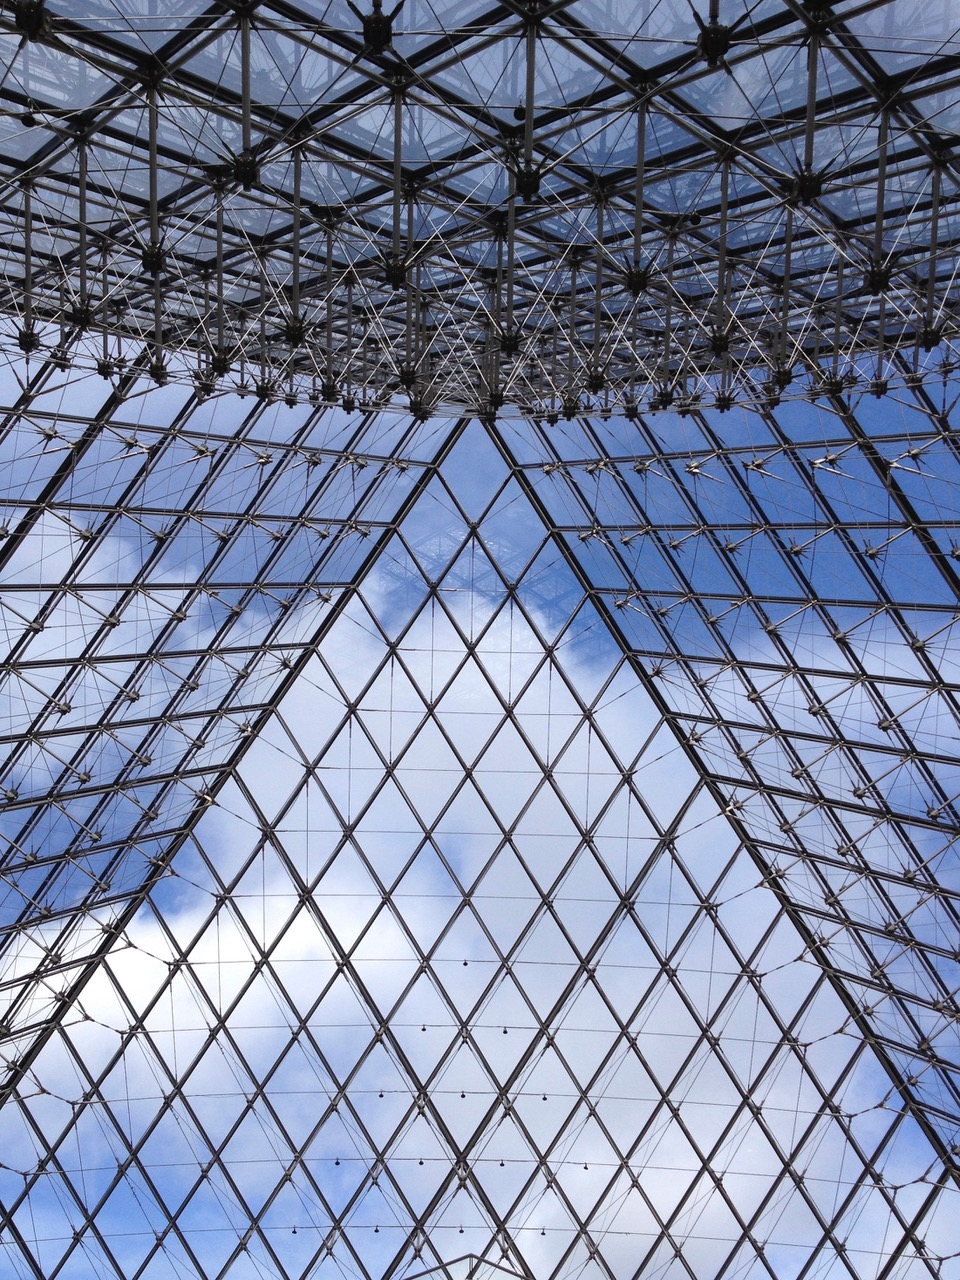 Top of the Louvre pyramid in Paris